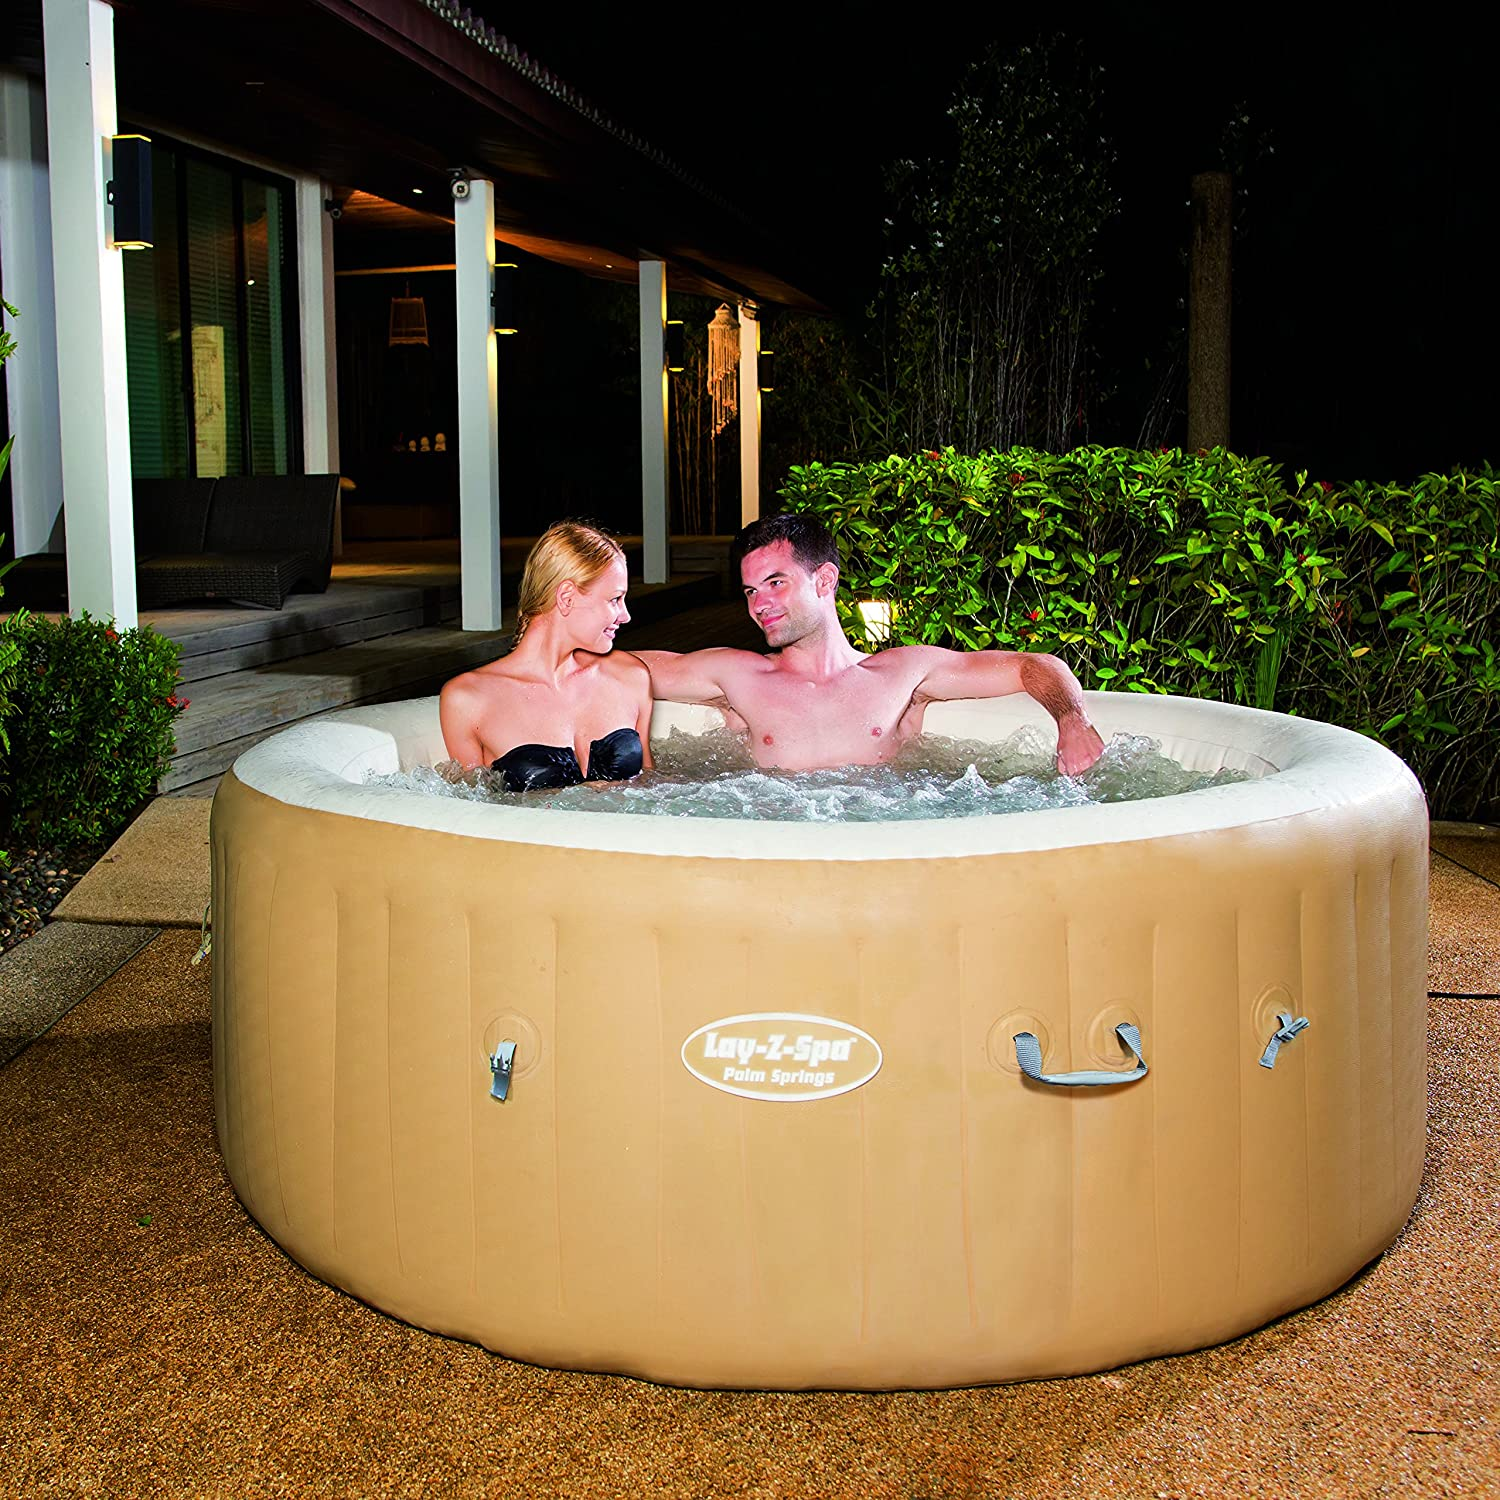 The Lay-Z-Spa 54129 Palm Springs is possibly the best blow up hot tub available on the market right now.